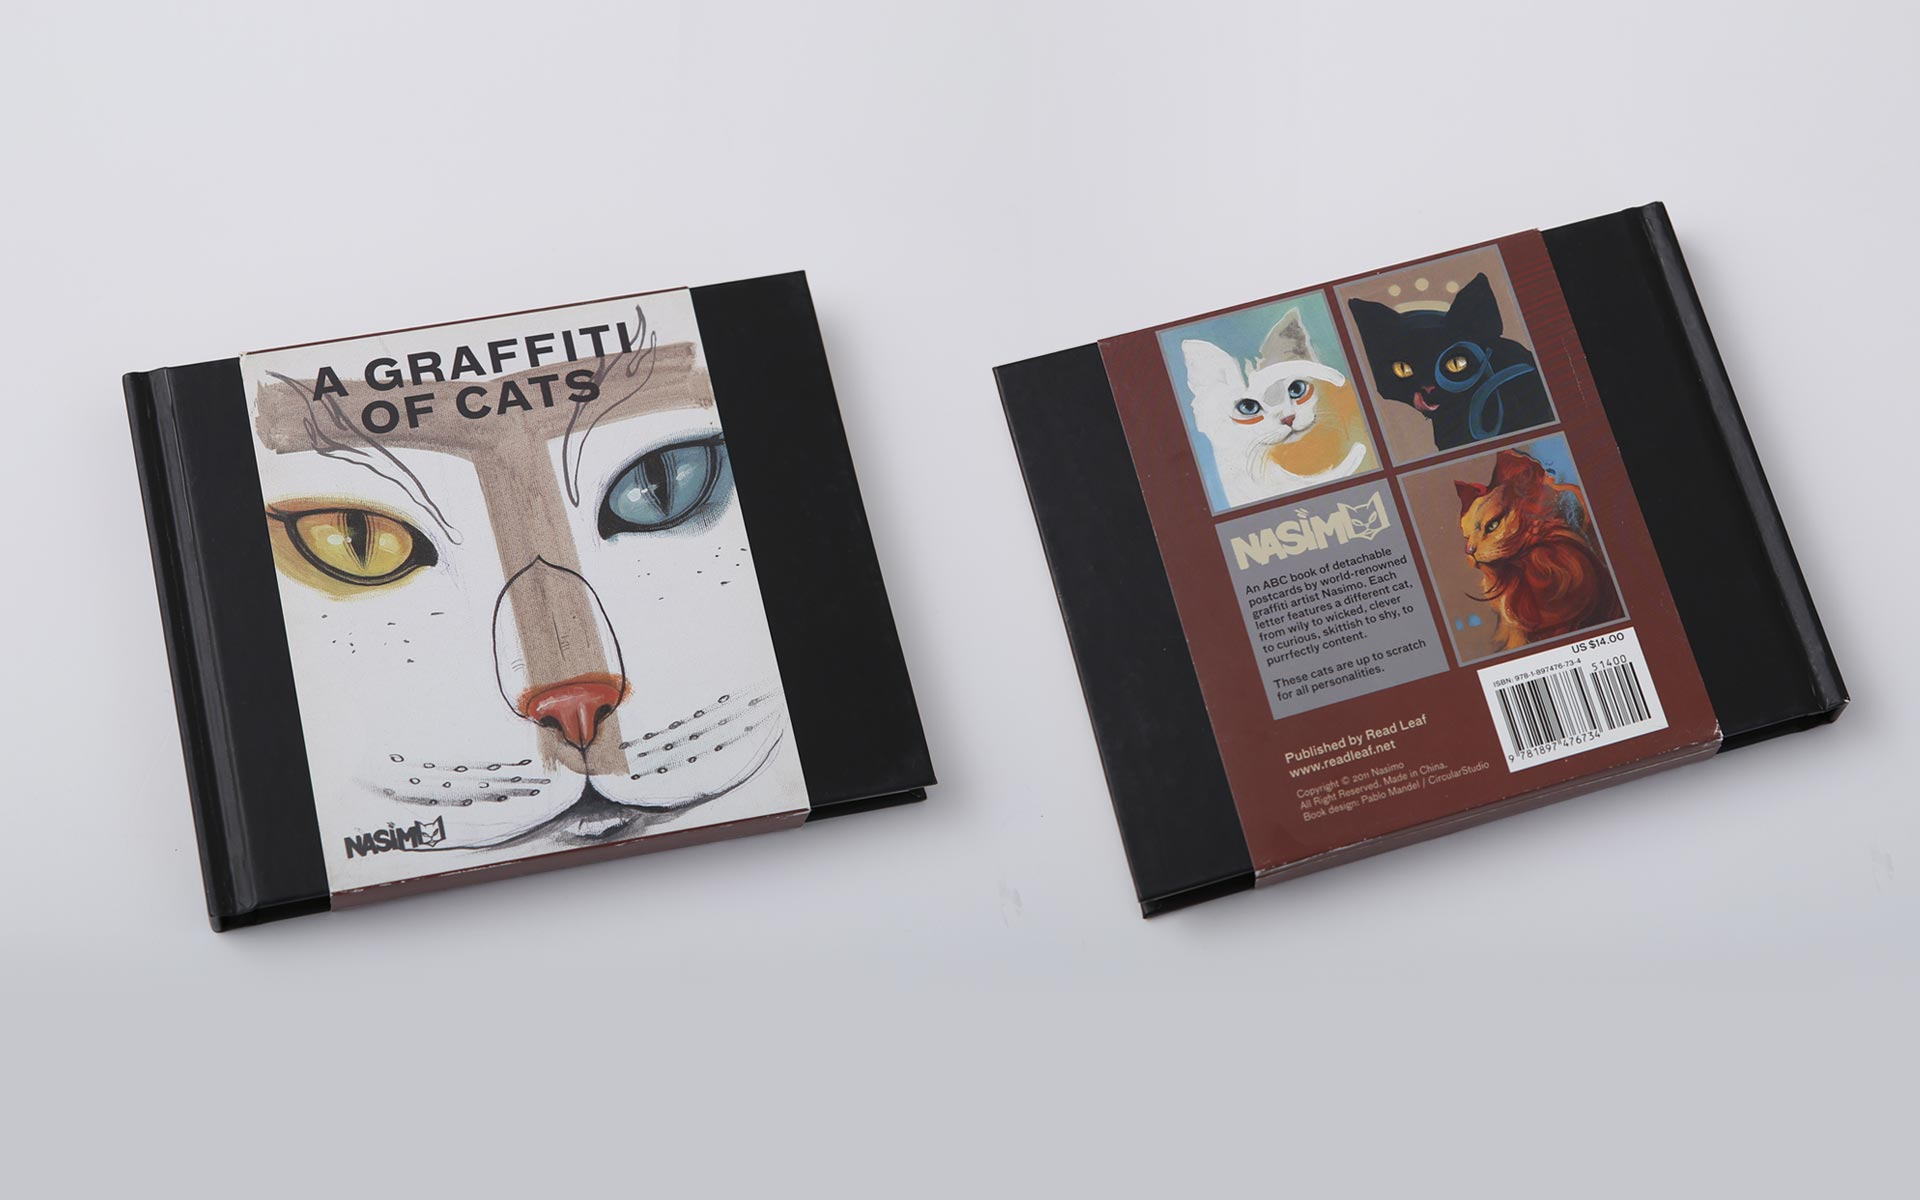 Nassimo: A Graffiti of Cats, postcards book